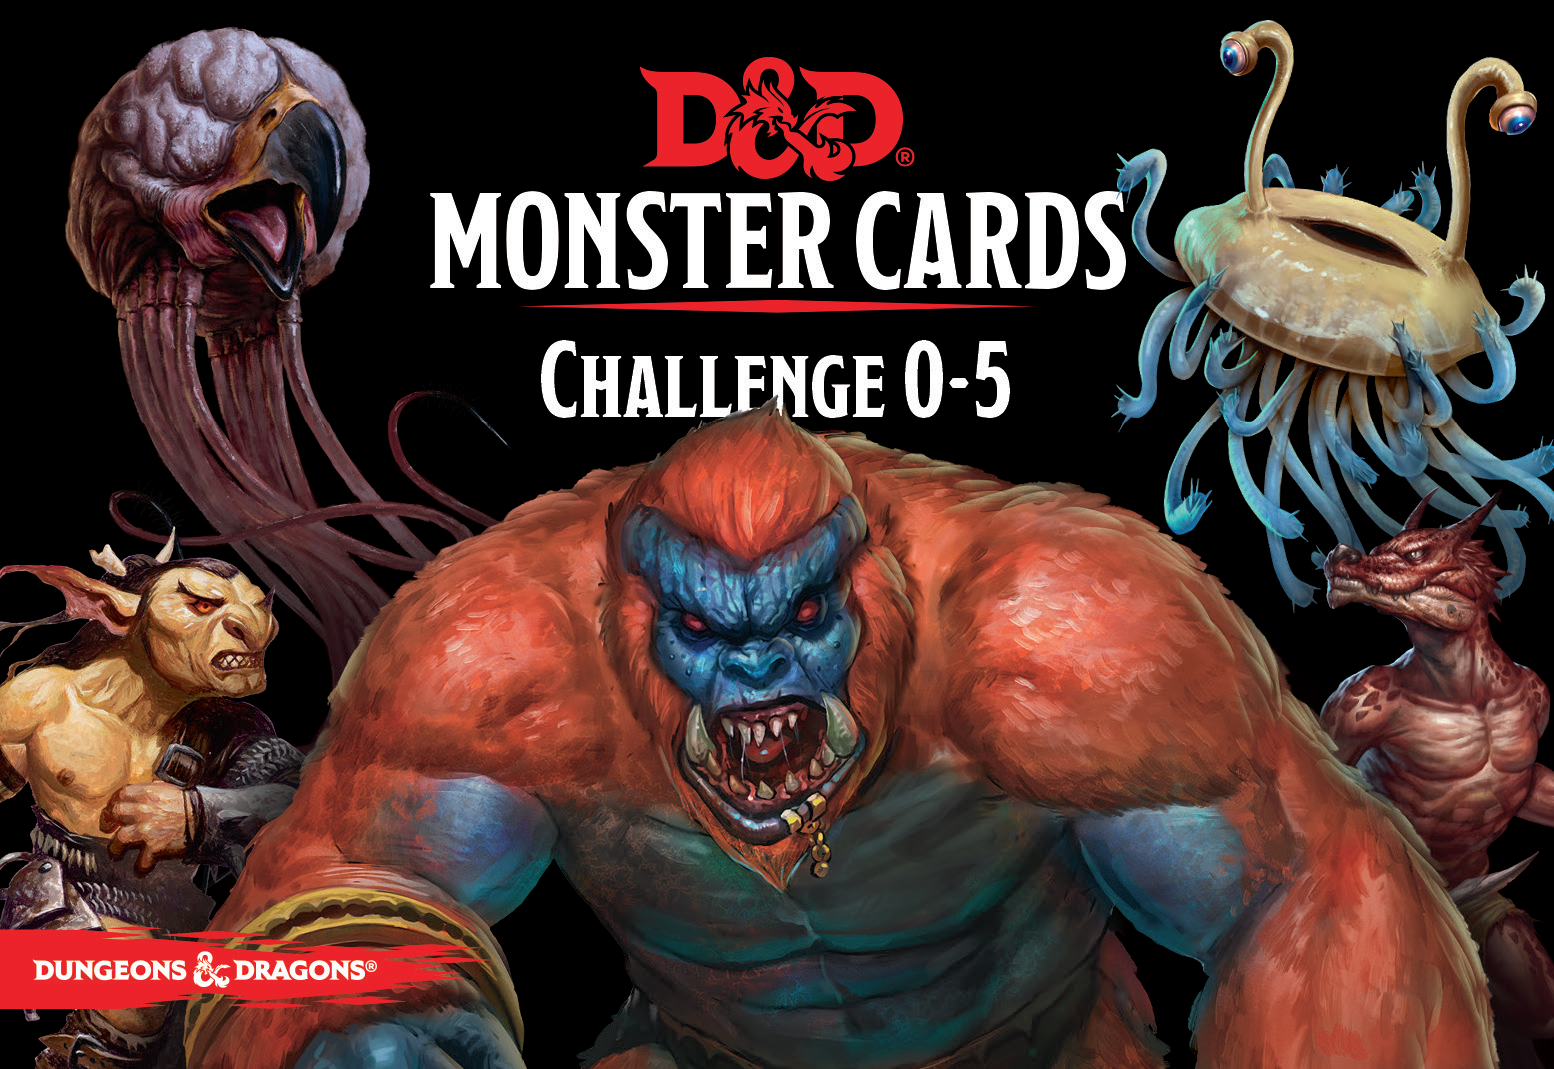 Dungeons & Dragons: Monster Cards CR 0-5 | Dragons Den Cards & Games